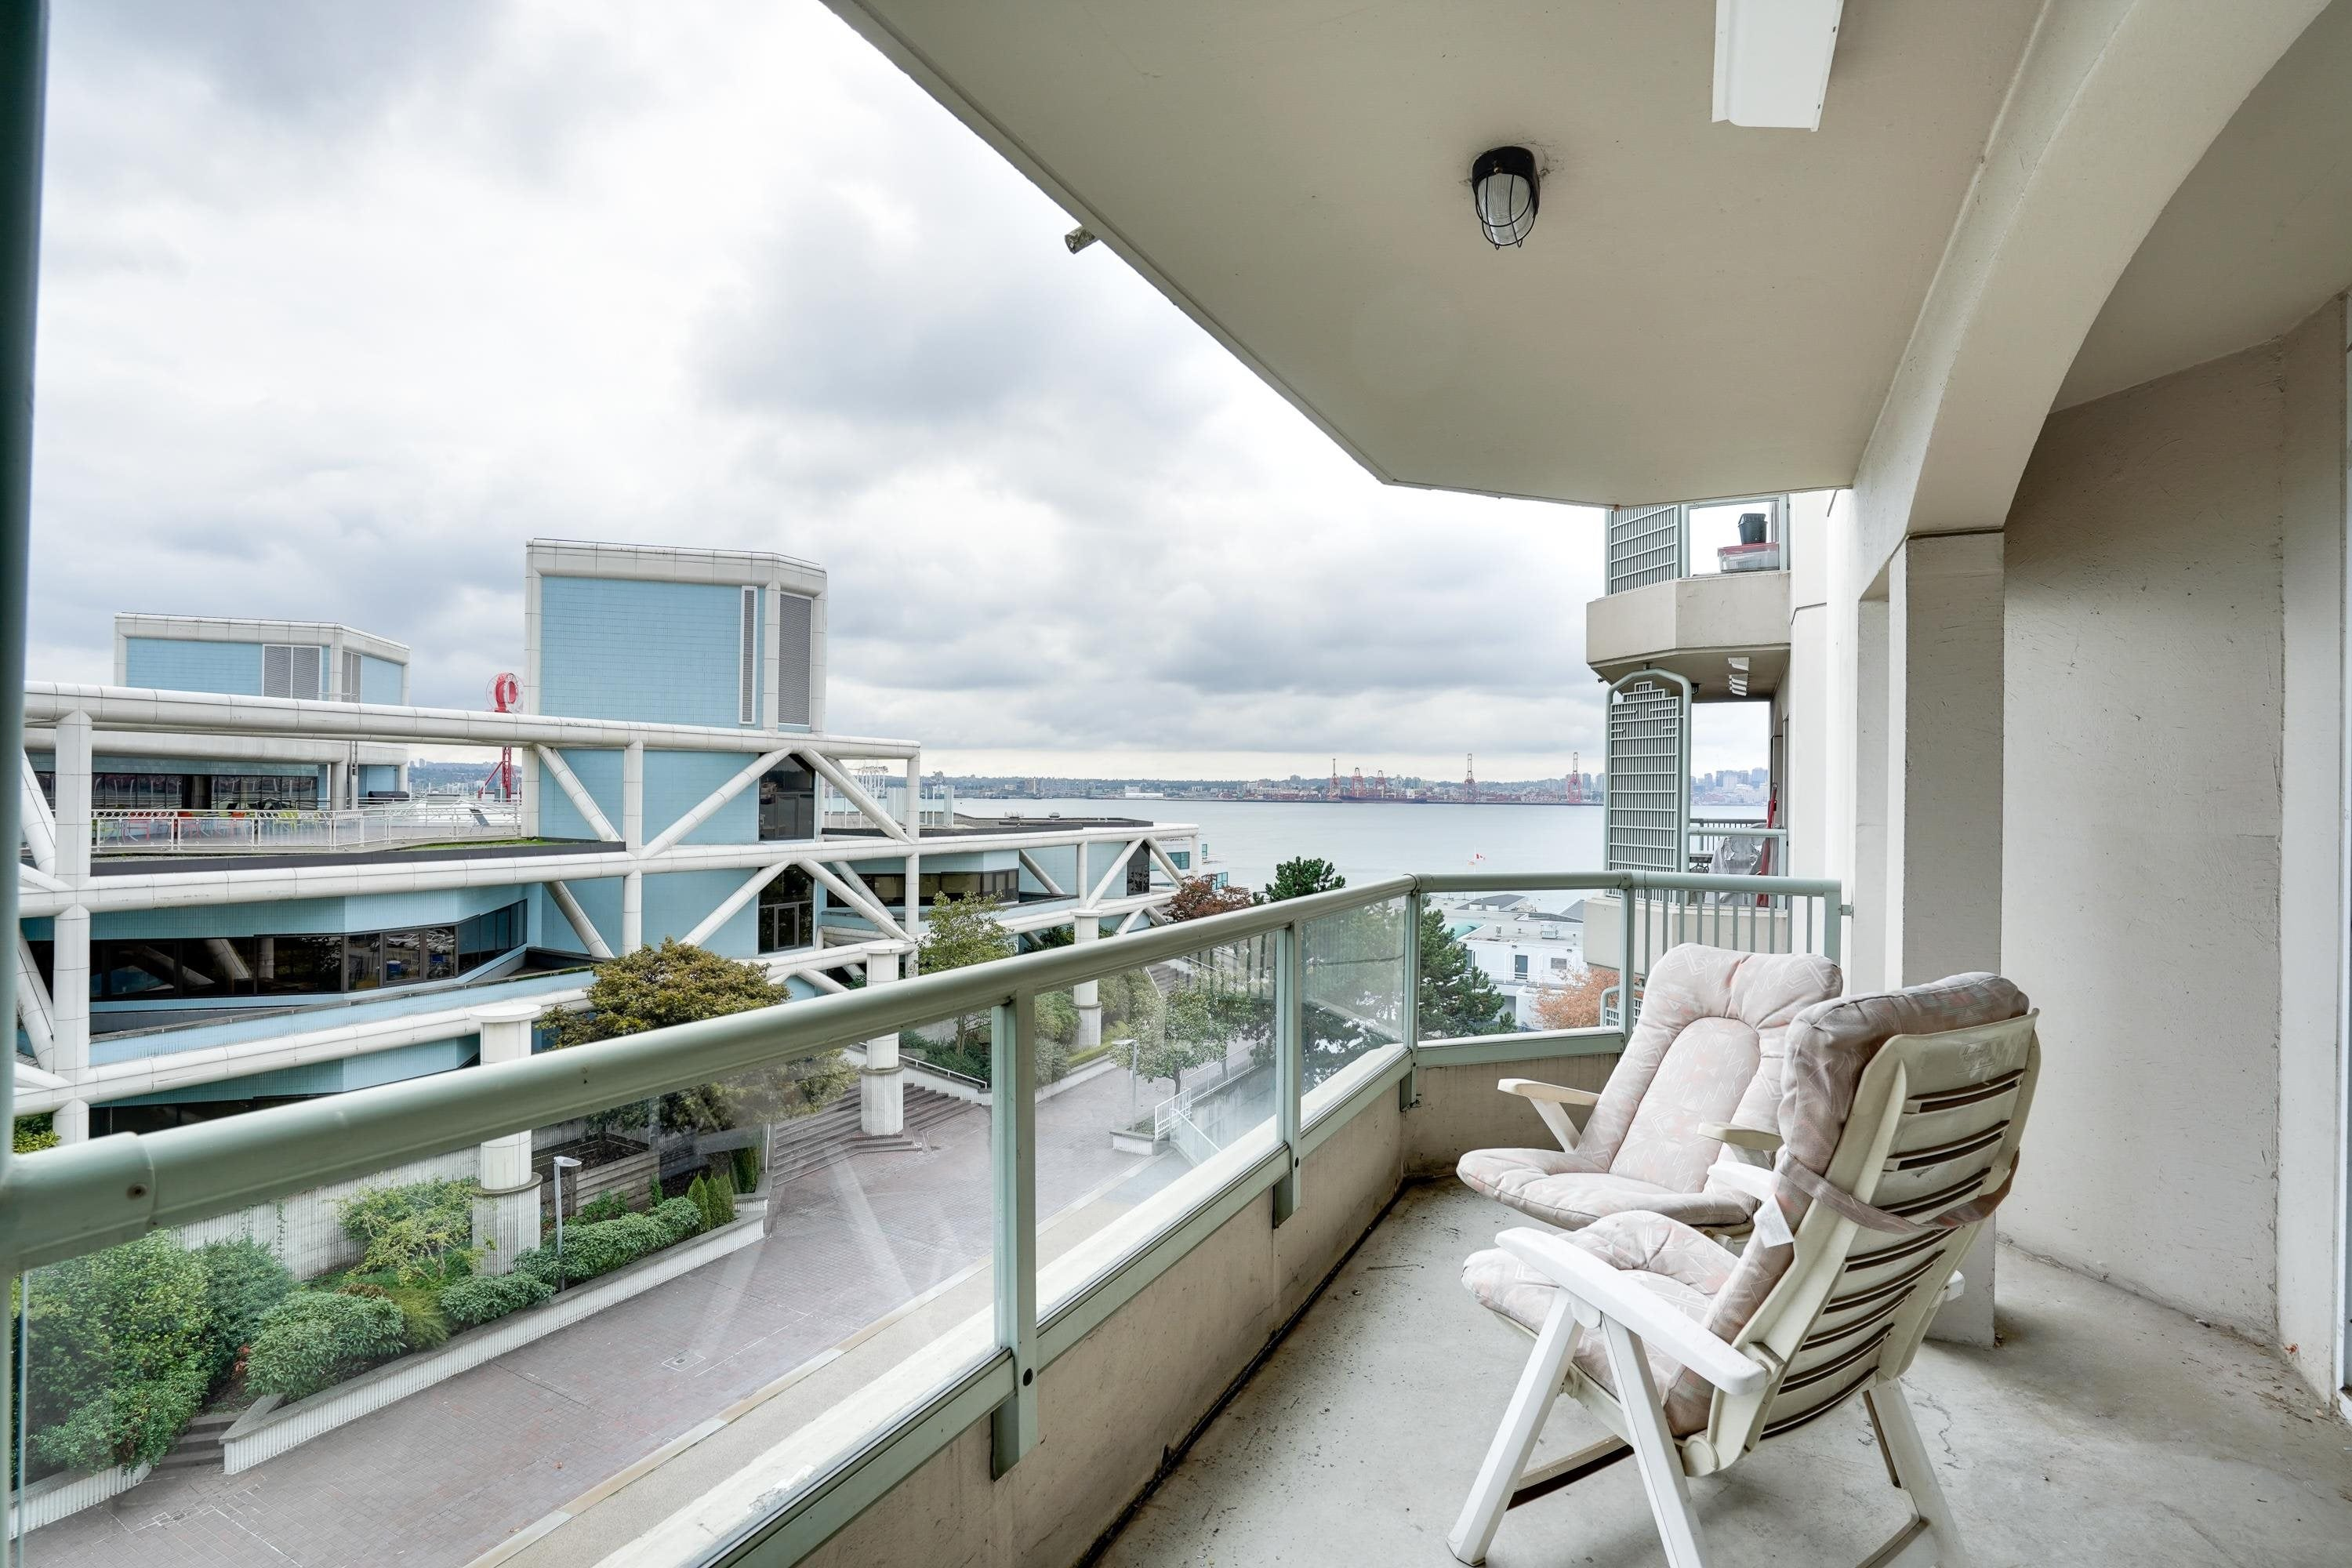 405 168 CHADWICK COURT - Lower Lonsdale Apartment/Condo for sale, 3 Bedrooms (R2619951) - #21